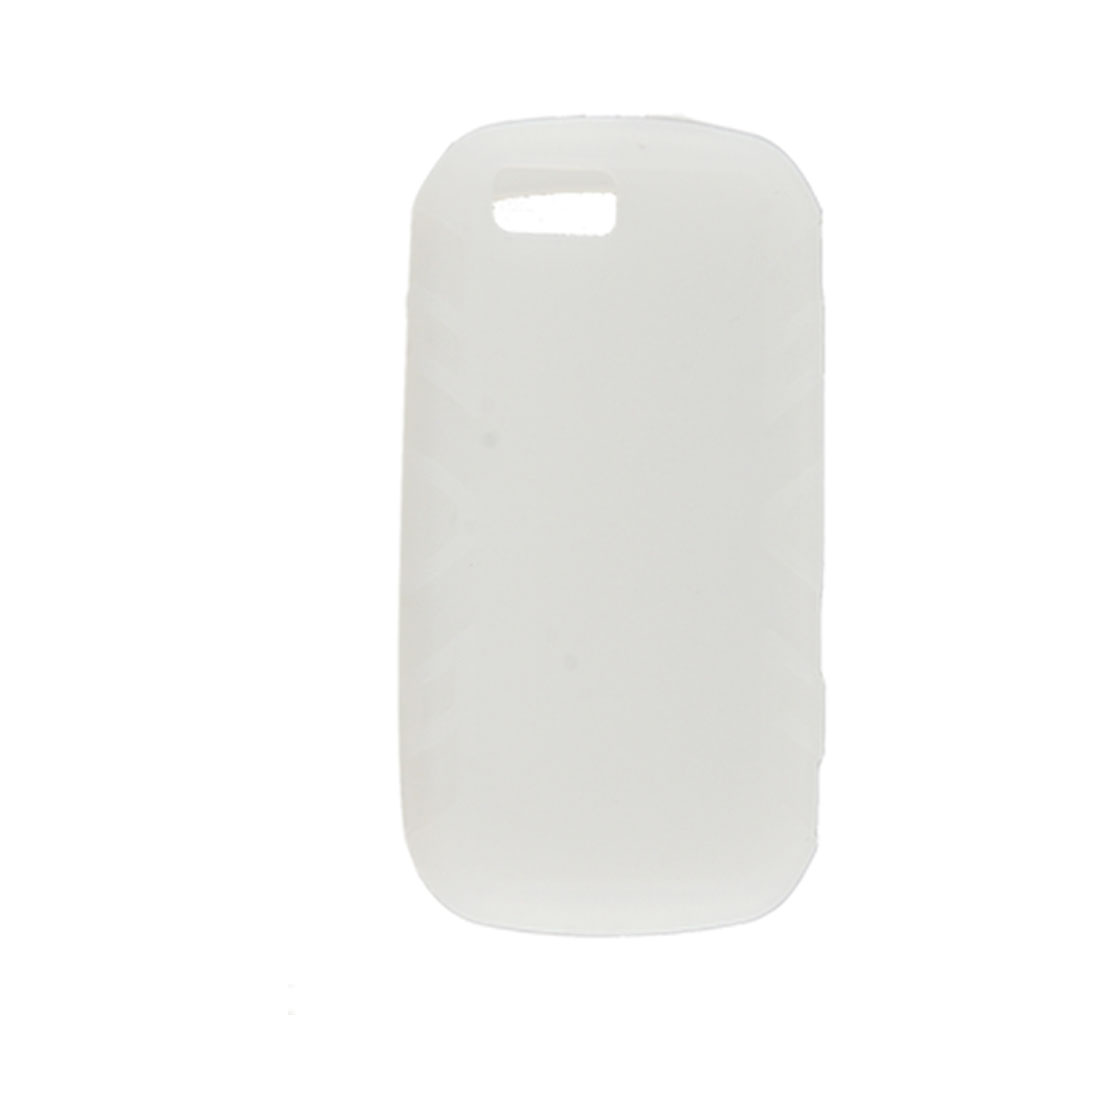 White Silicone Skin Soft Protective Case for Motorola i1